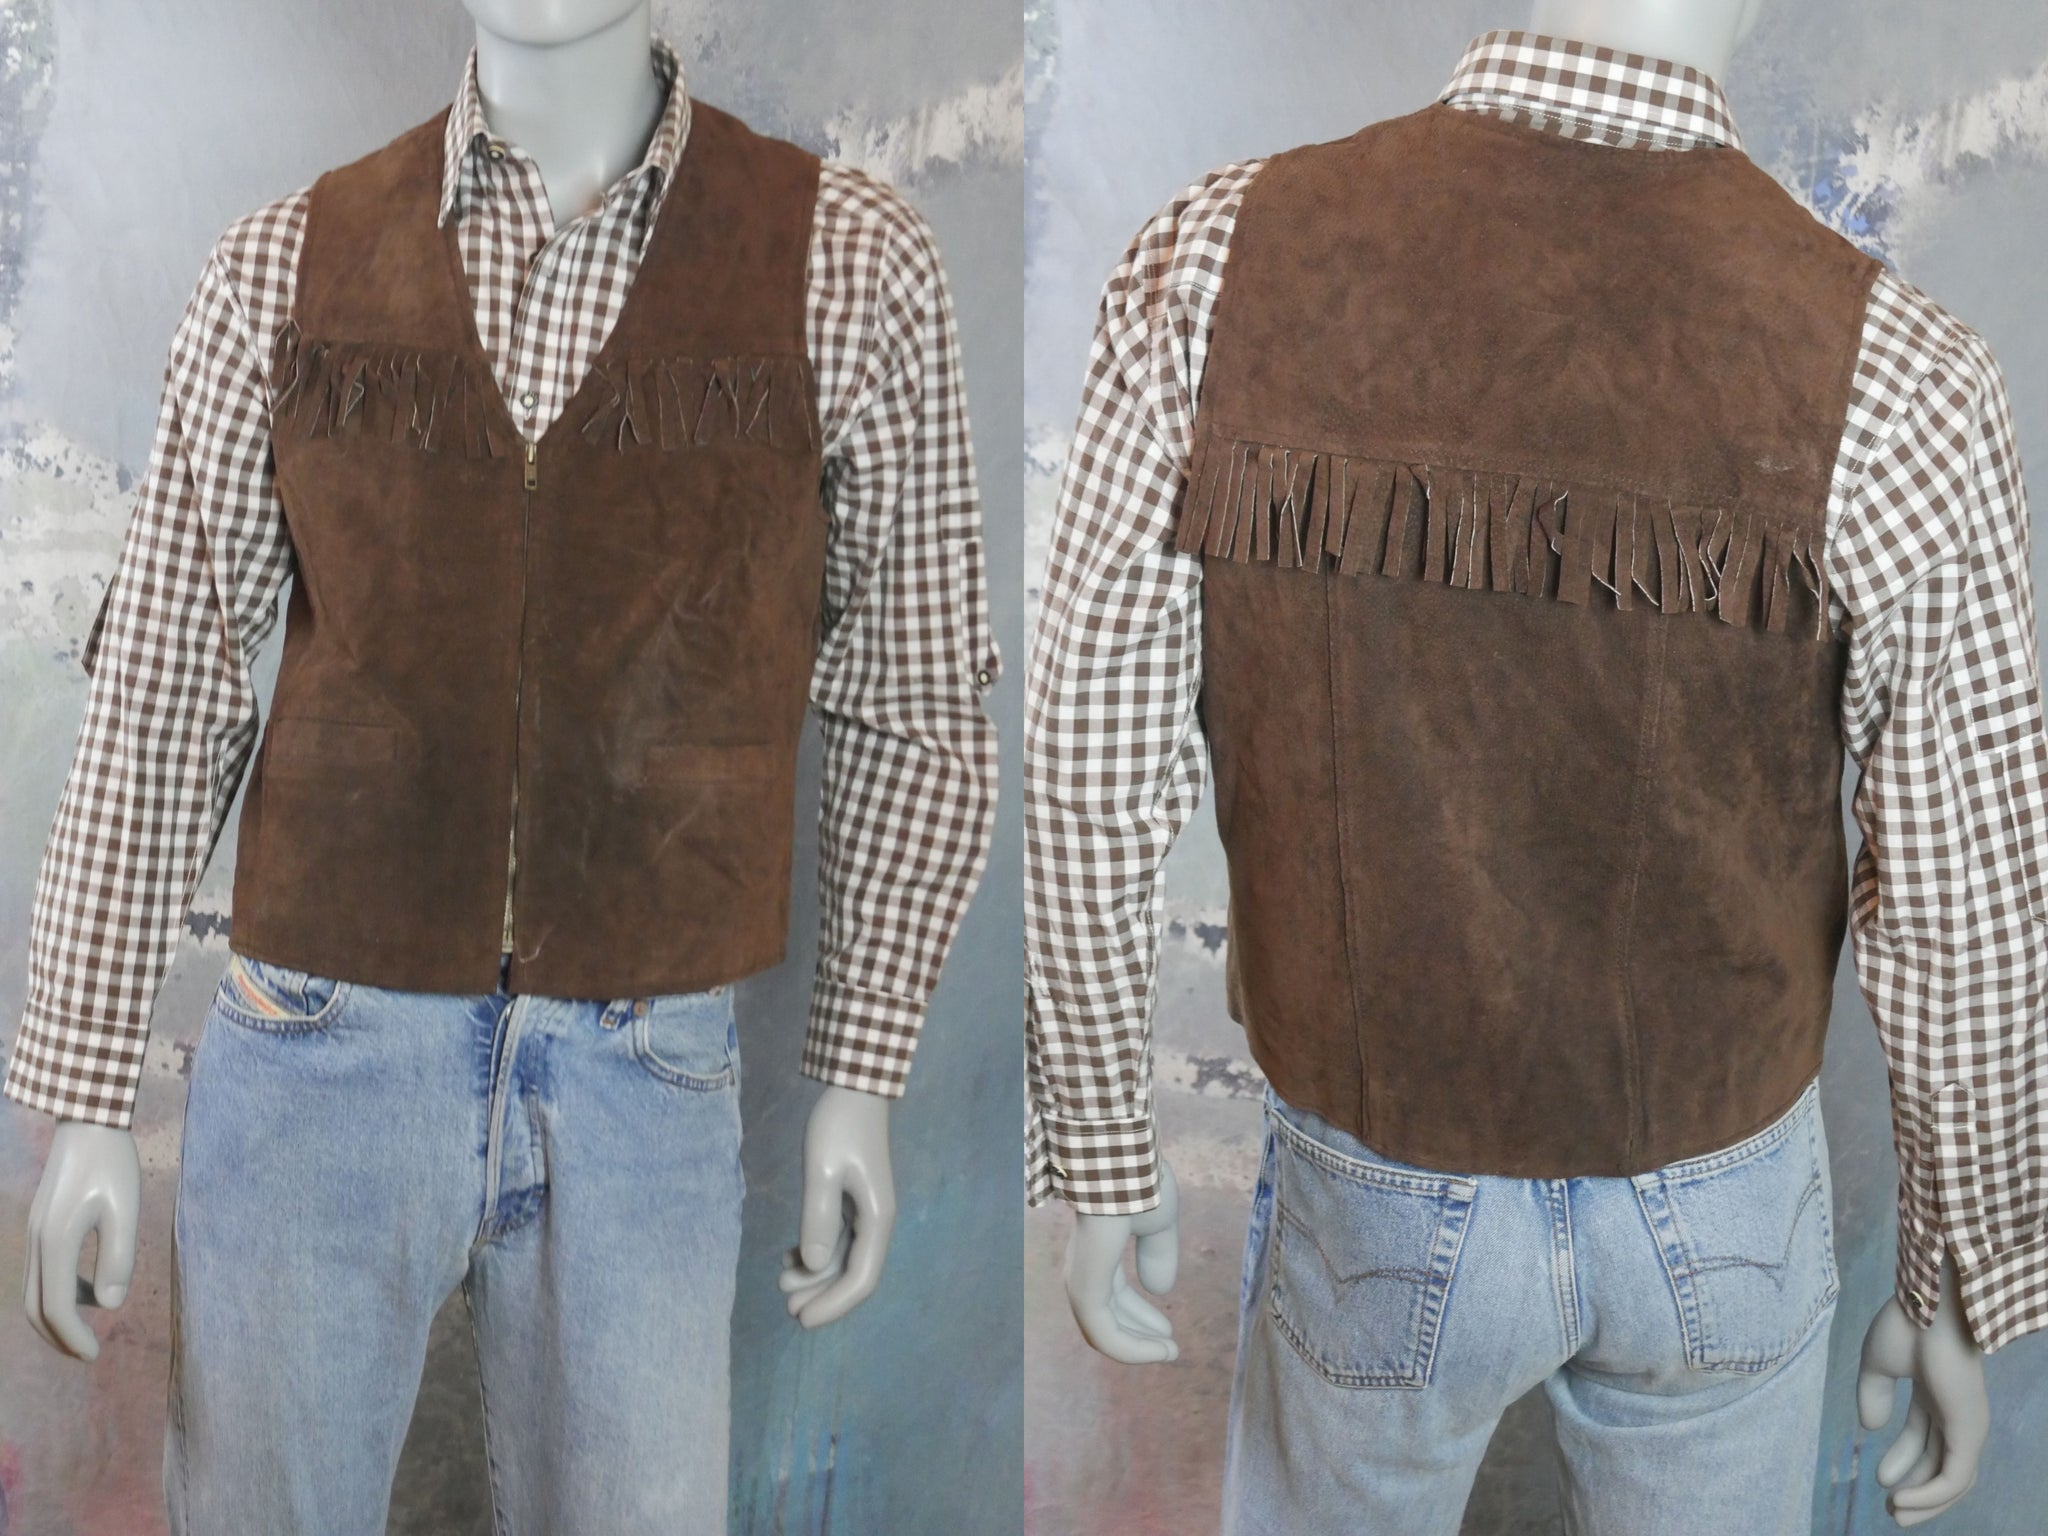 Leather Fringe Vest, 1990s Vintage Zippered Brown Brushed Suede Waistcoat: Size Medium (38 to 40 US/UK) - DownShifting Vintage Menswear